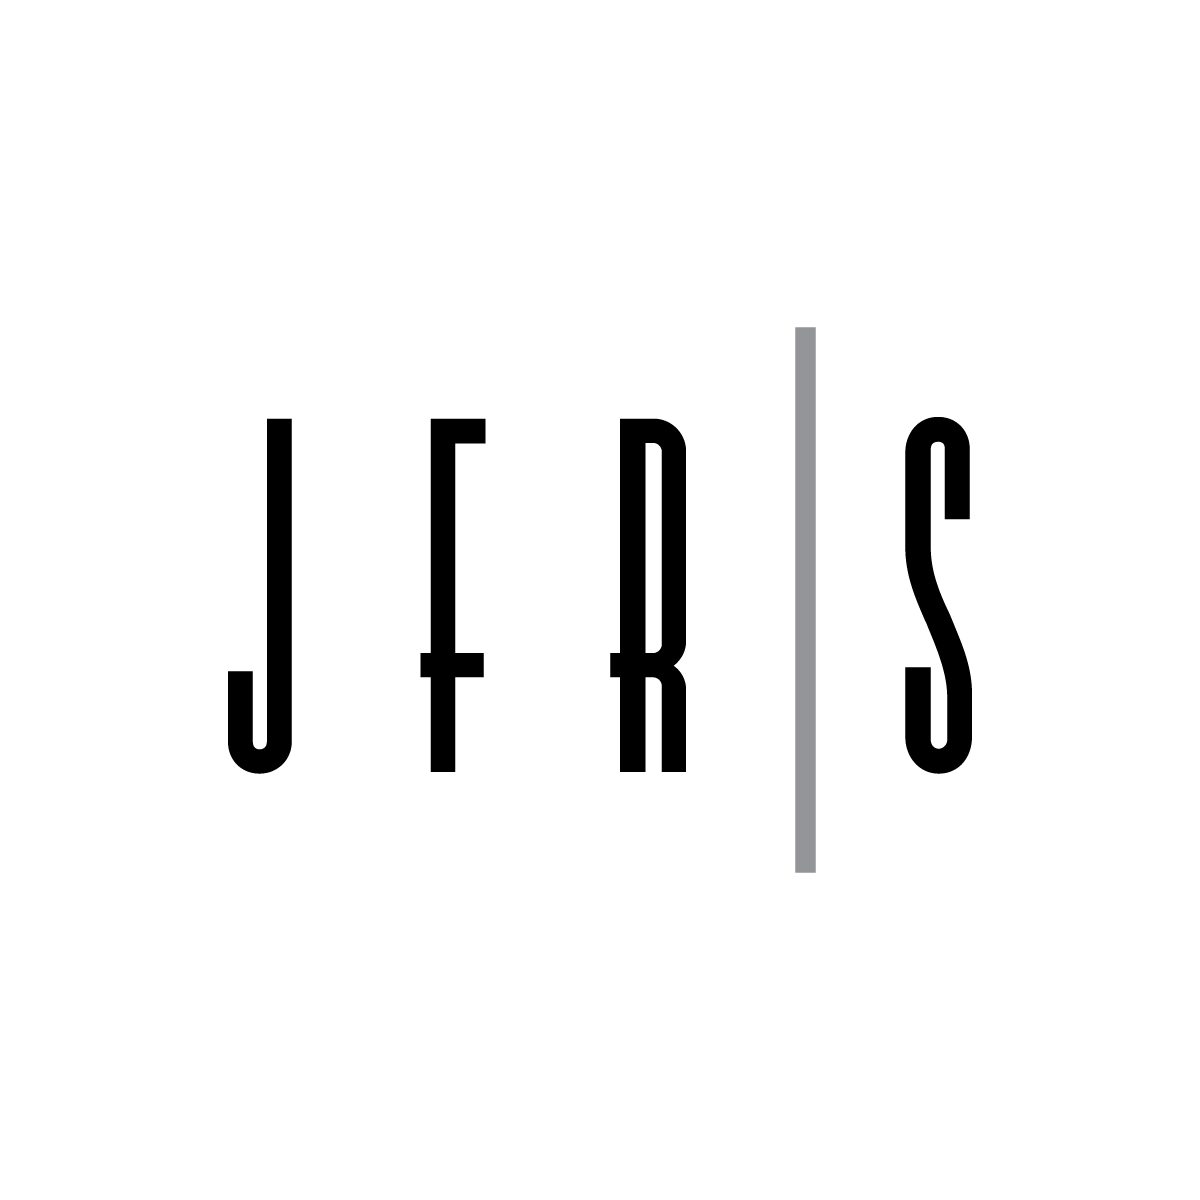 jfrs_white-01.png